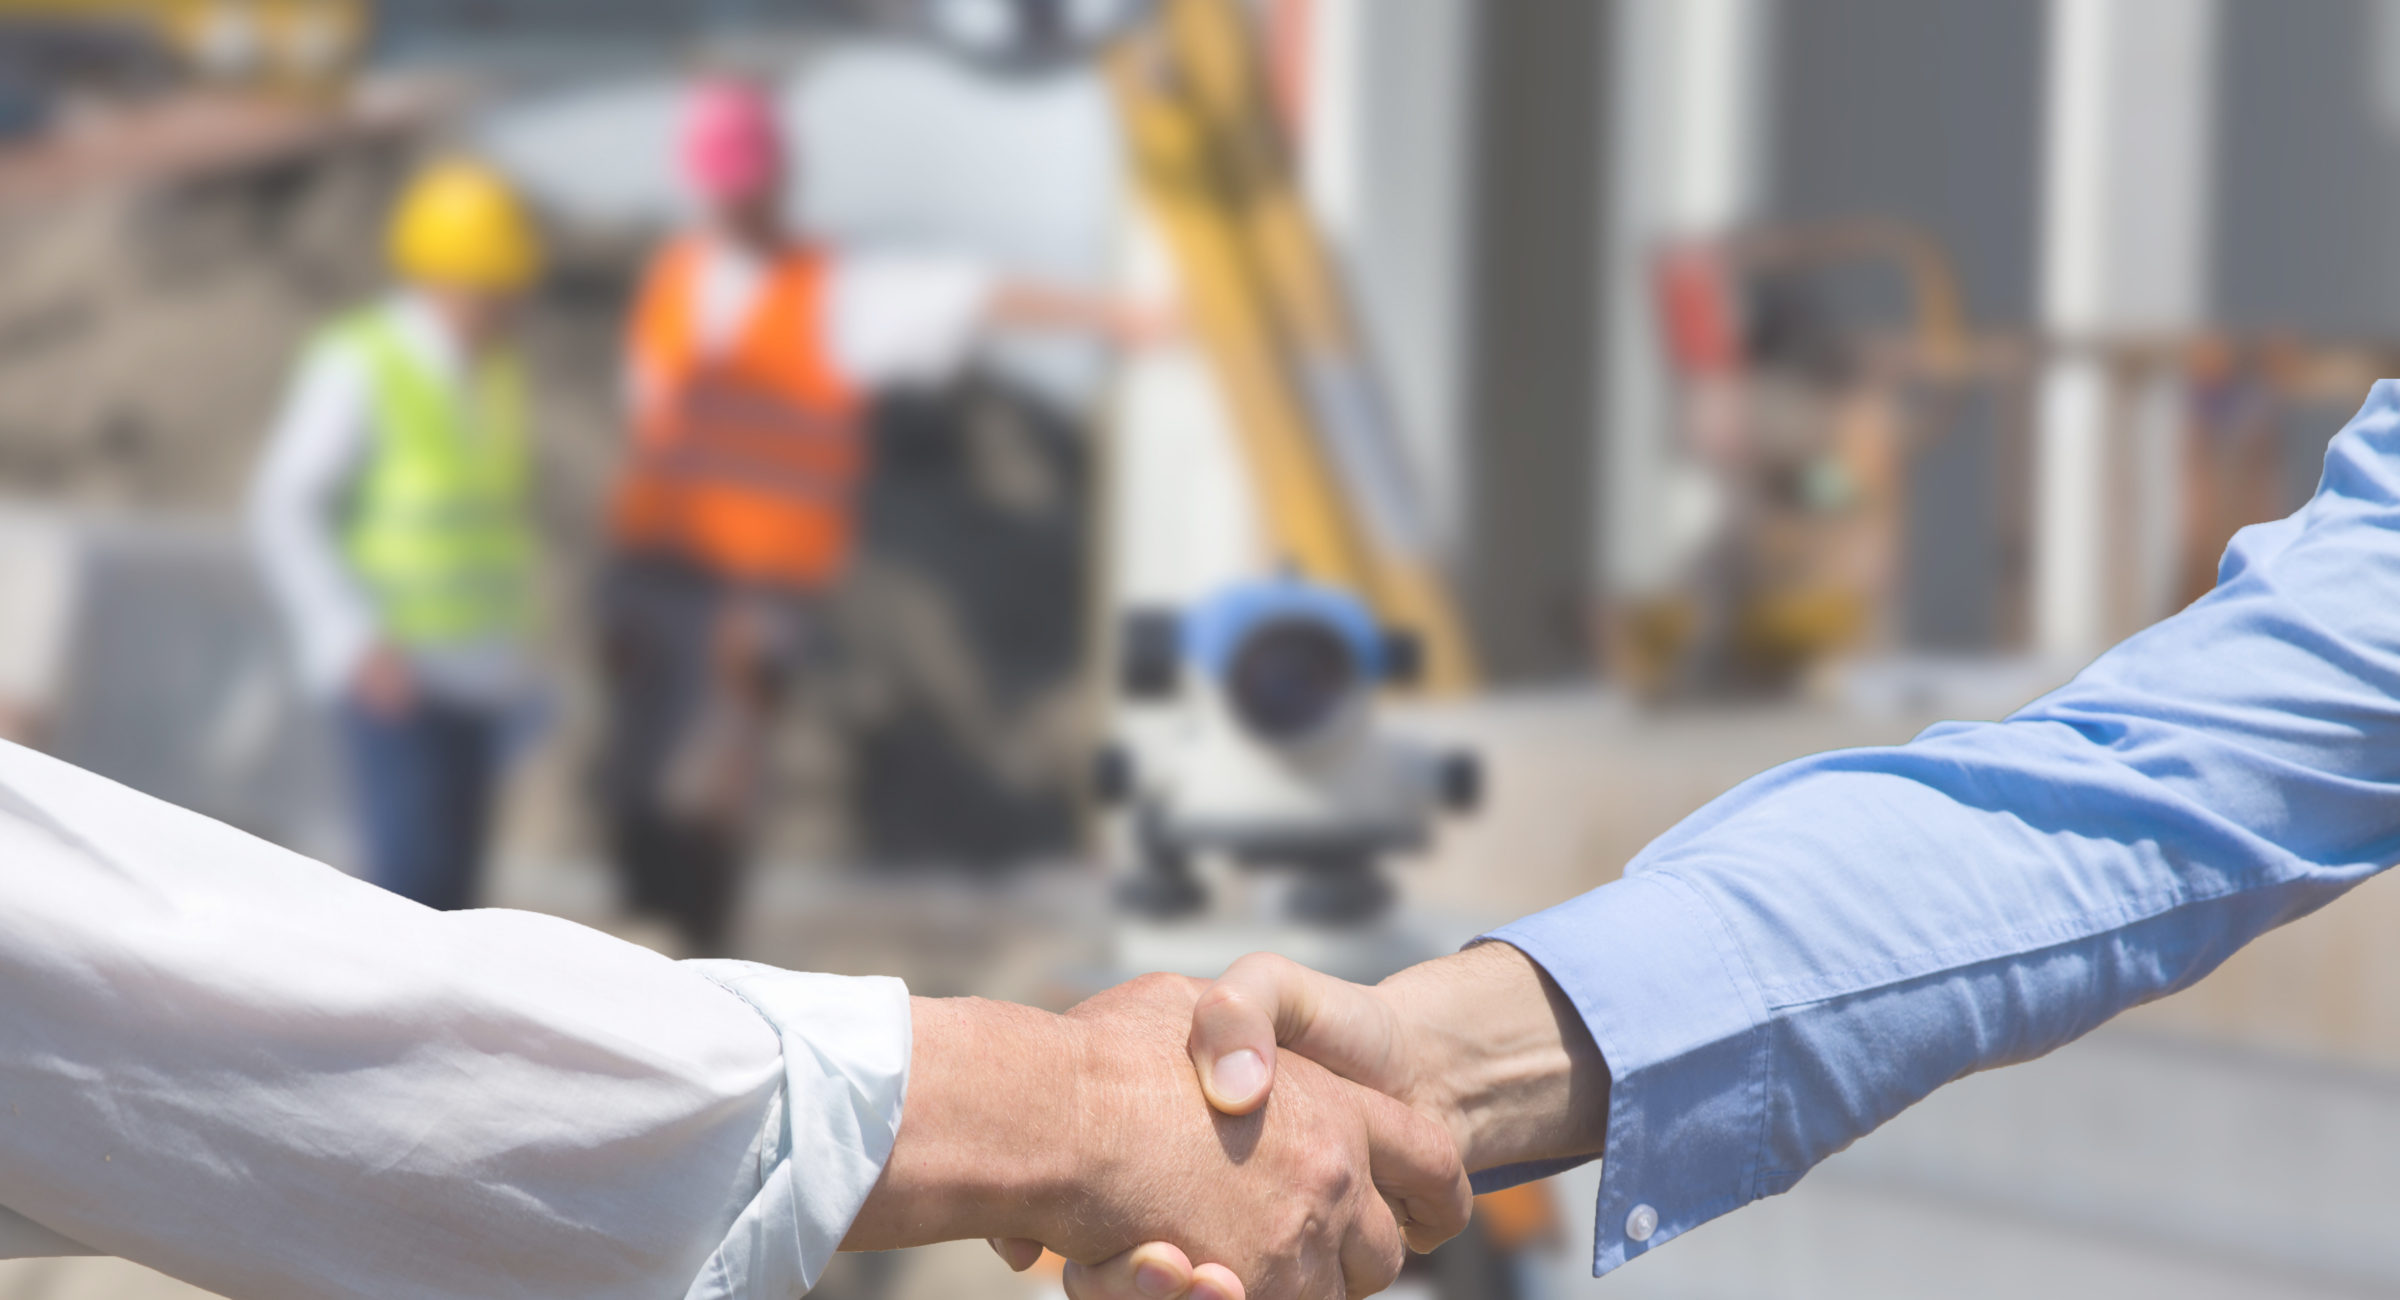 Two business people shaking hands in front of leveling instrument on construction site with workers in background